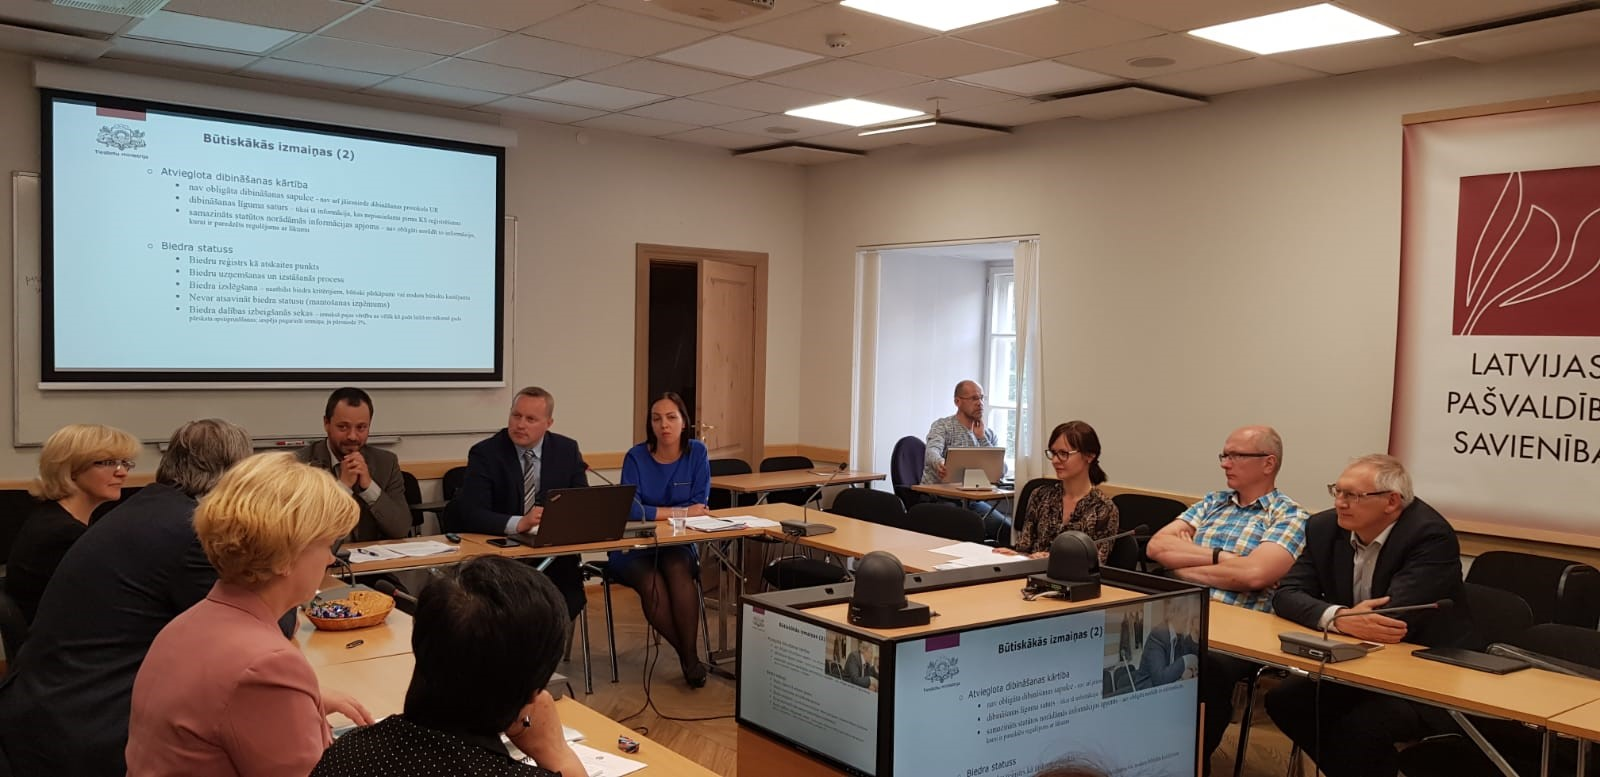 Joint meeting of the Board of the Union of Municipalities and LALRG Entrepreneurship network